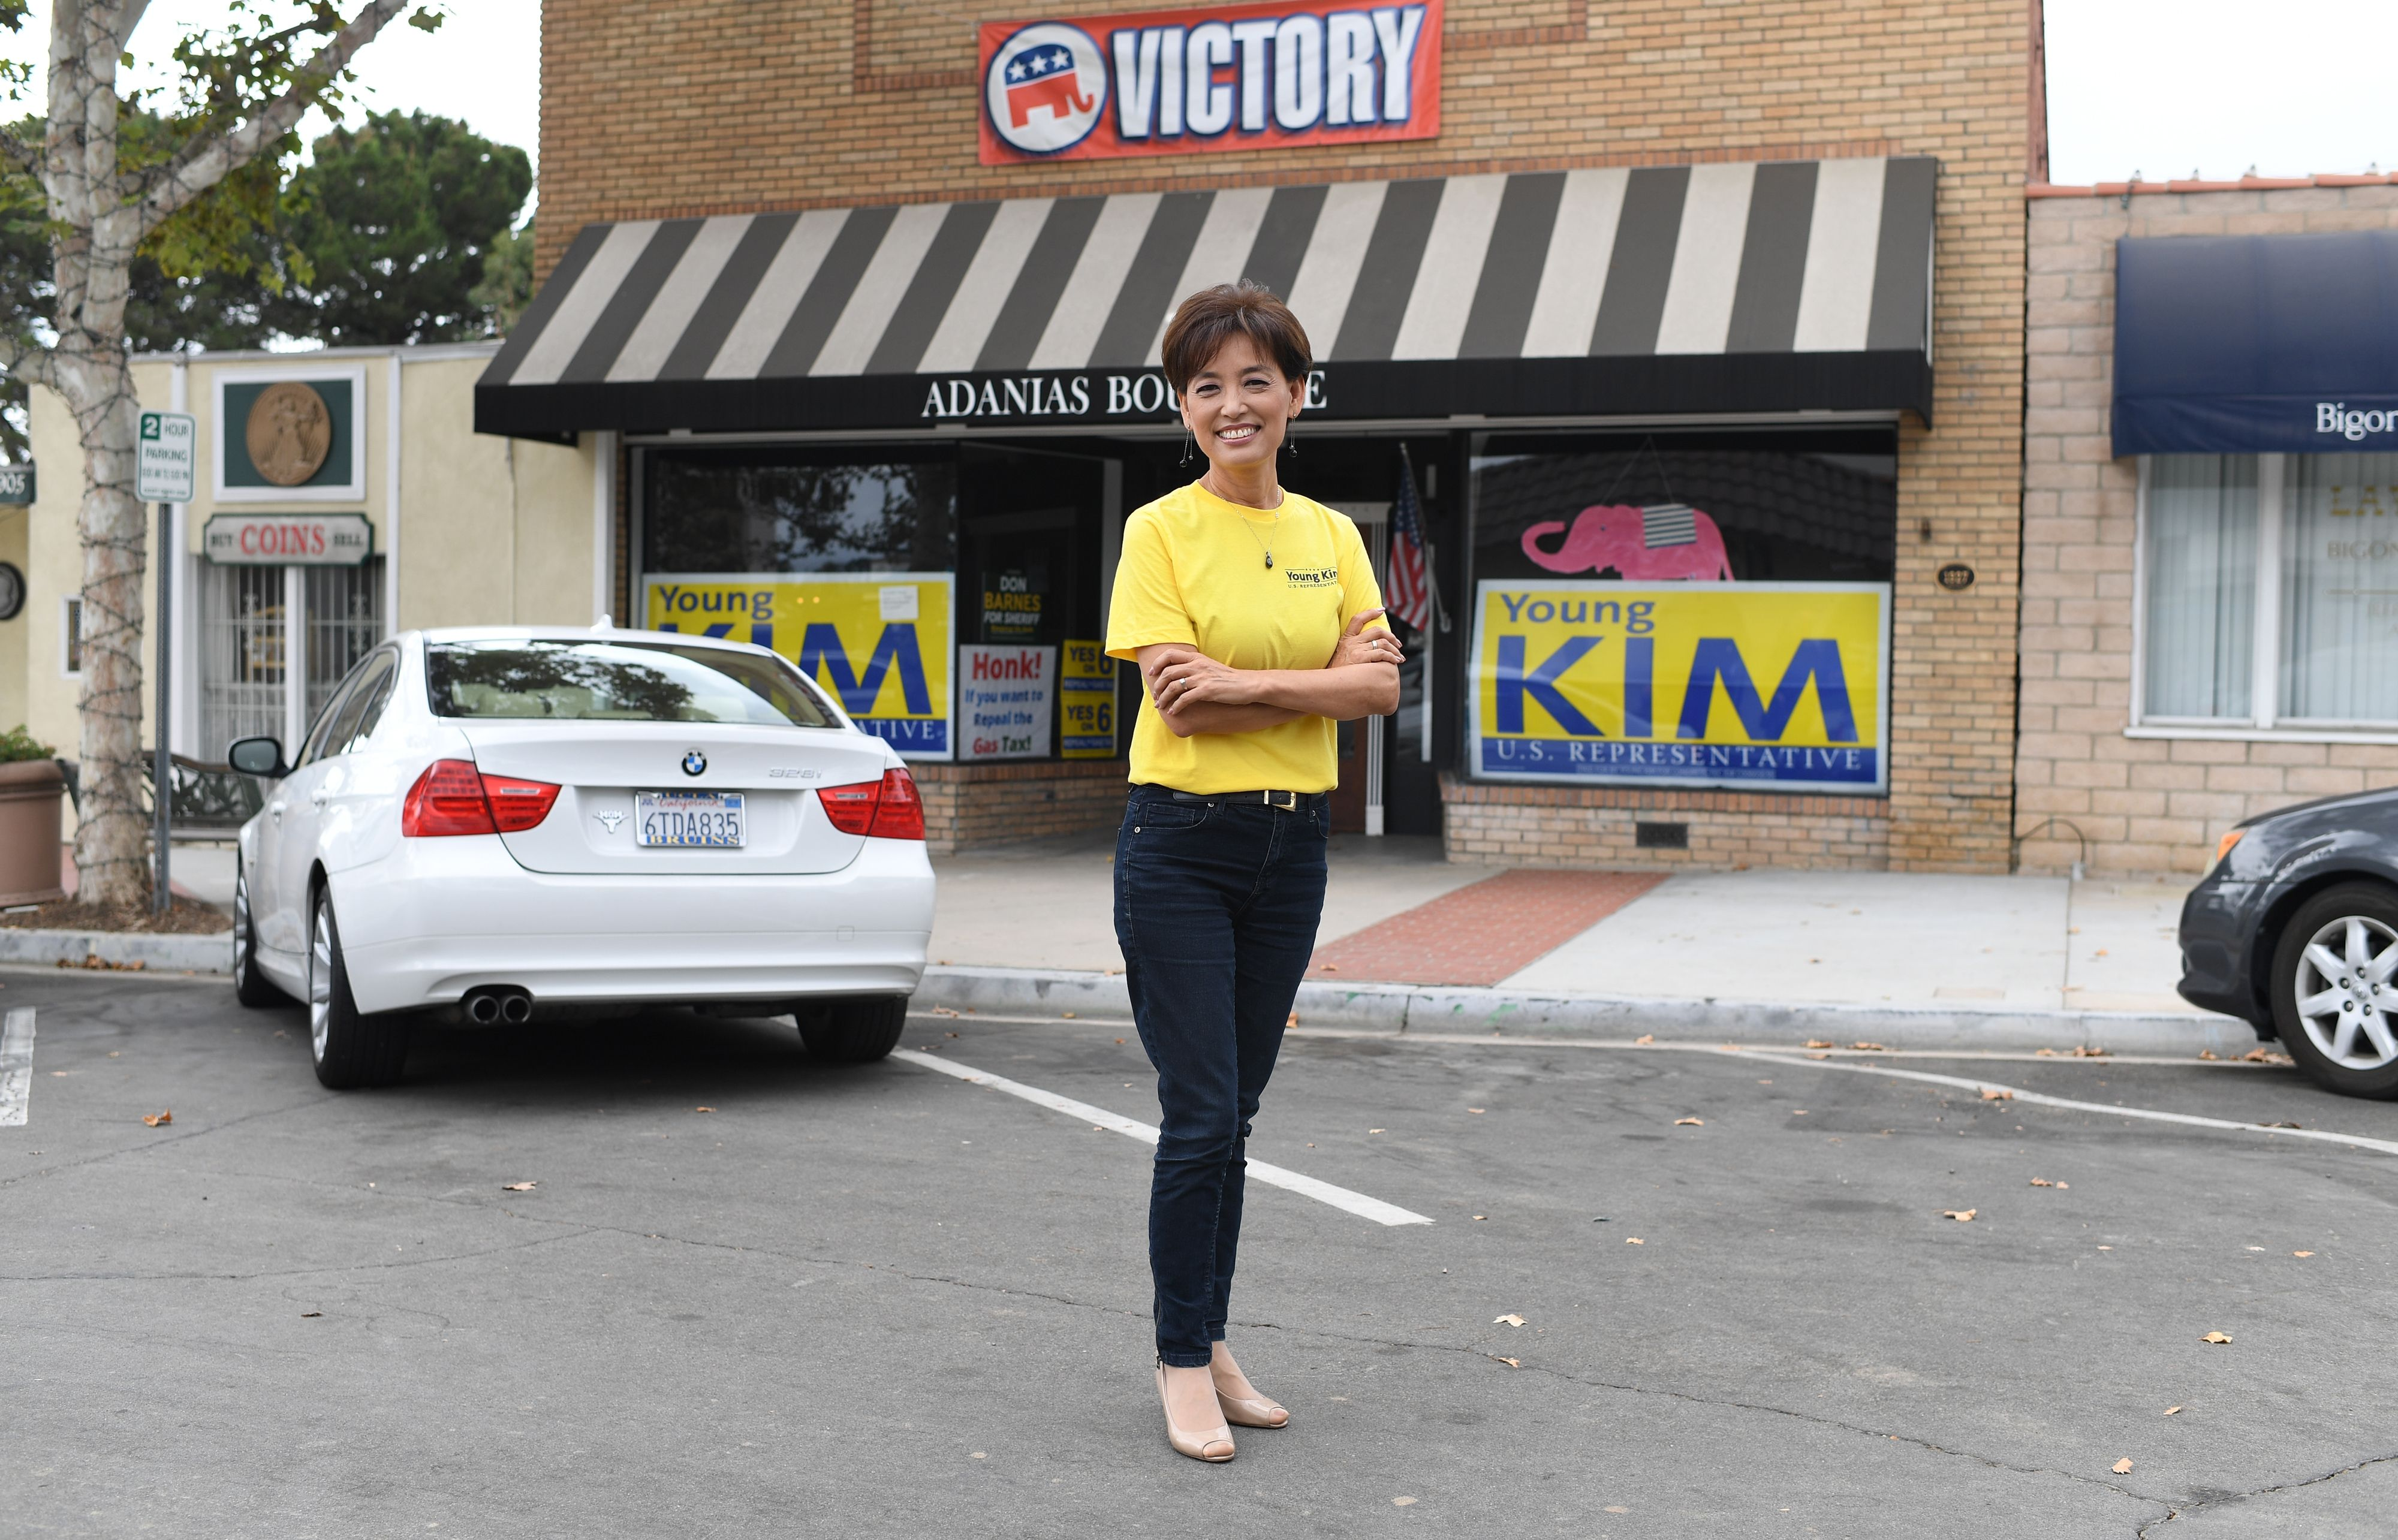 First time Republican candidate for US Congress Young Kim, 55, poses for a portrait at her campaign office in Yorba Linda, California, October 6, 2018. - Kim, who immigrated to the US from her birth country of South Korea in 1975, would be the first Korean-American woman elected to the US House of Representatives if she defeats her Democratic opponent Gil Cisneros in the Midterm elections race for the open seat in California's 39th Congressional District which includes parts of Los Angeles, Orange, and San Bernardino counties. (Photo by Robyn Beck / AFP) (Photo credit should read ROBYN BECK/AFP/Getty Images)